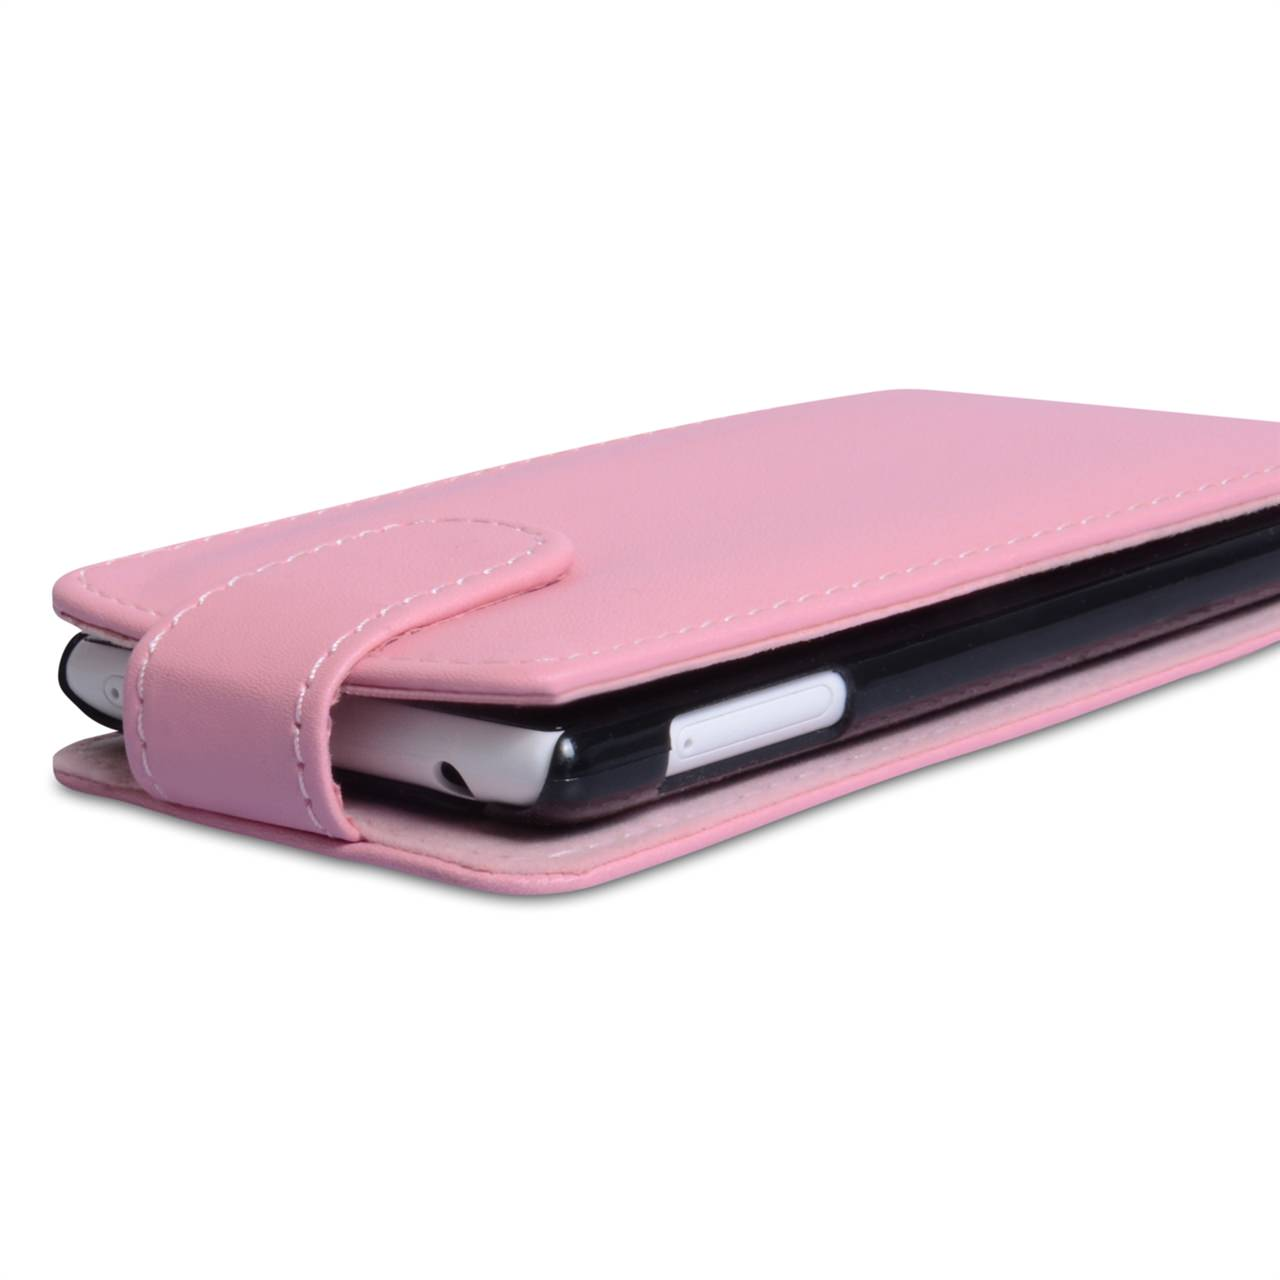 YouSave Nokia Lumia 720 Leather Effect Flip Case - Baby Pink